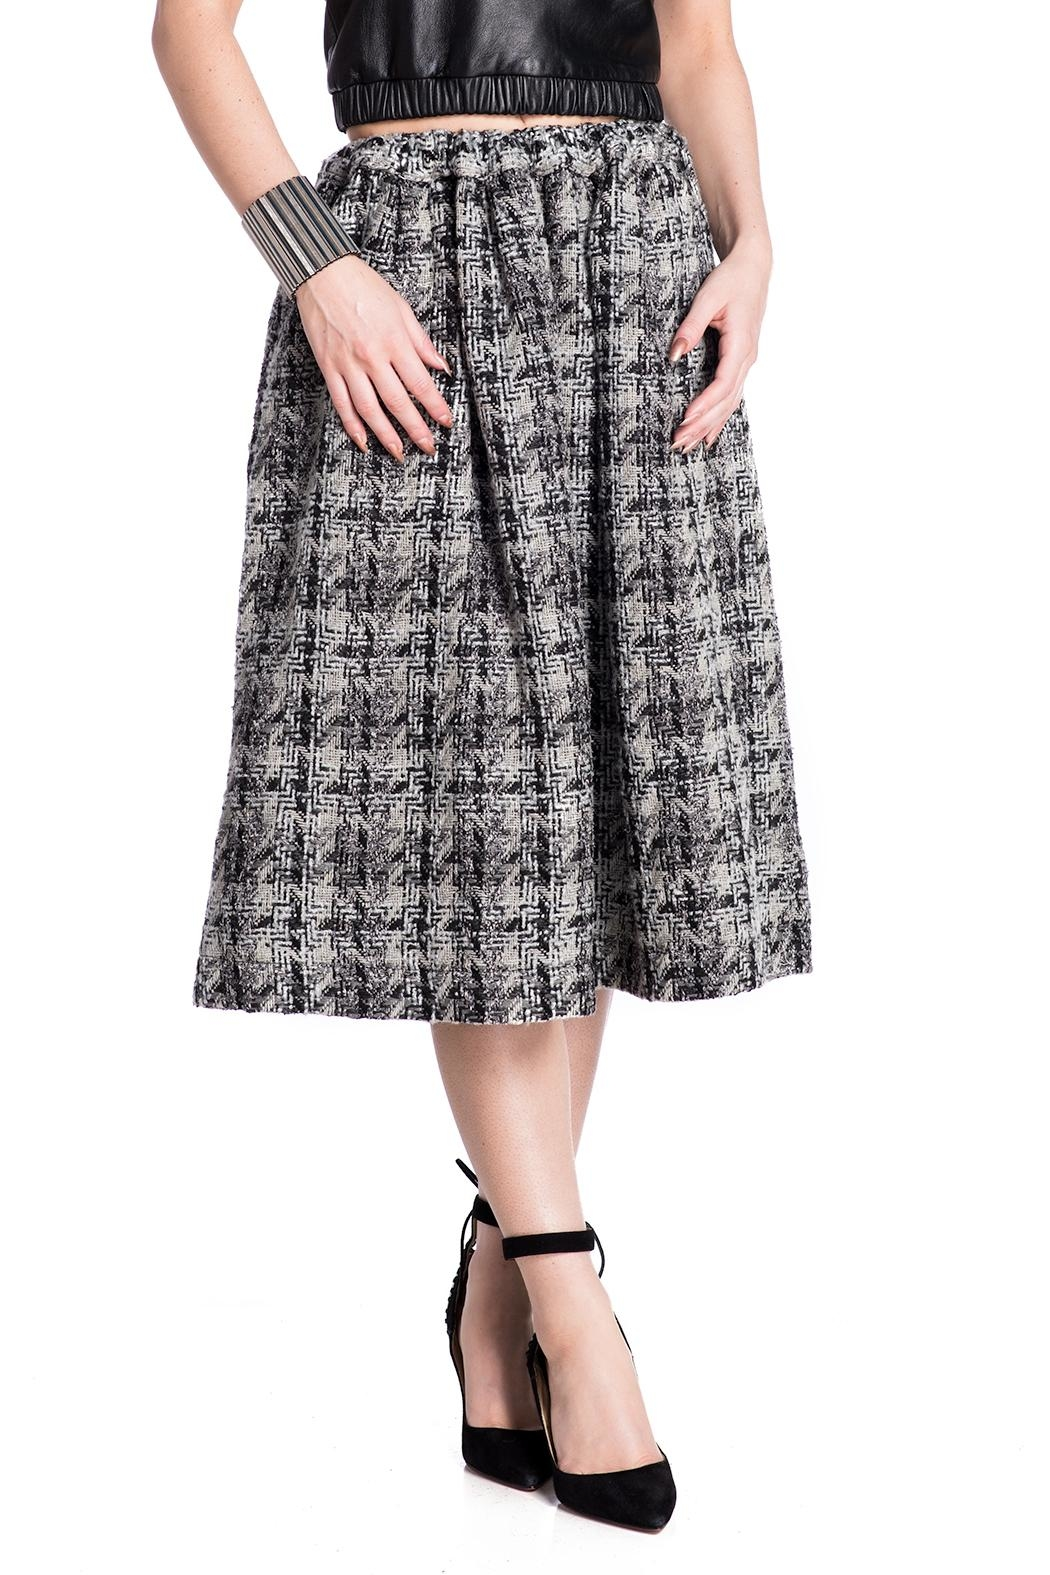 E. Tautz Pull Tie Wool Skirt - Side Cropped Image